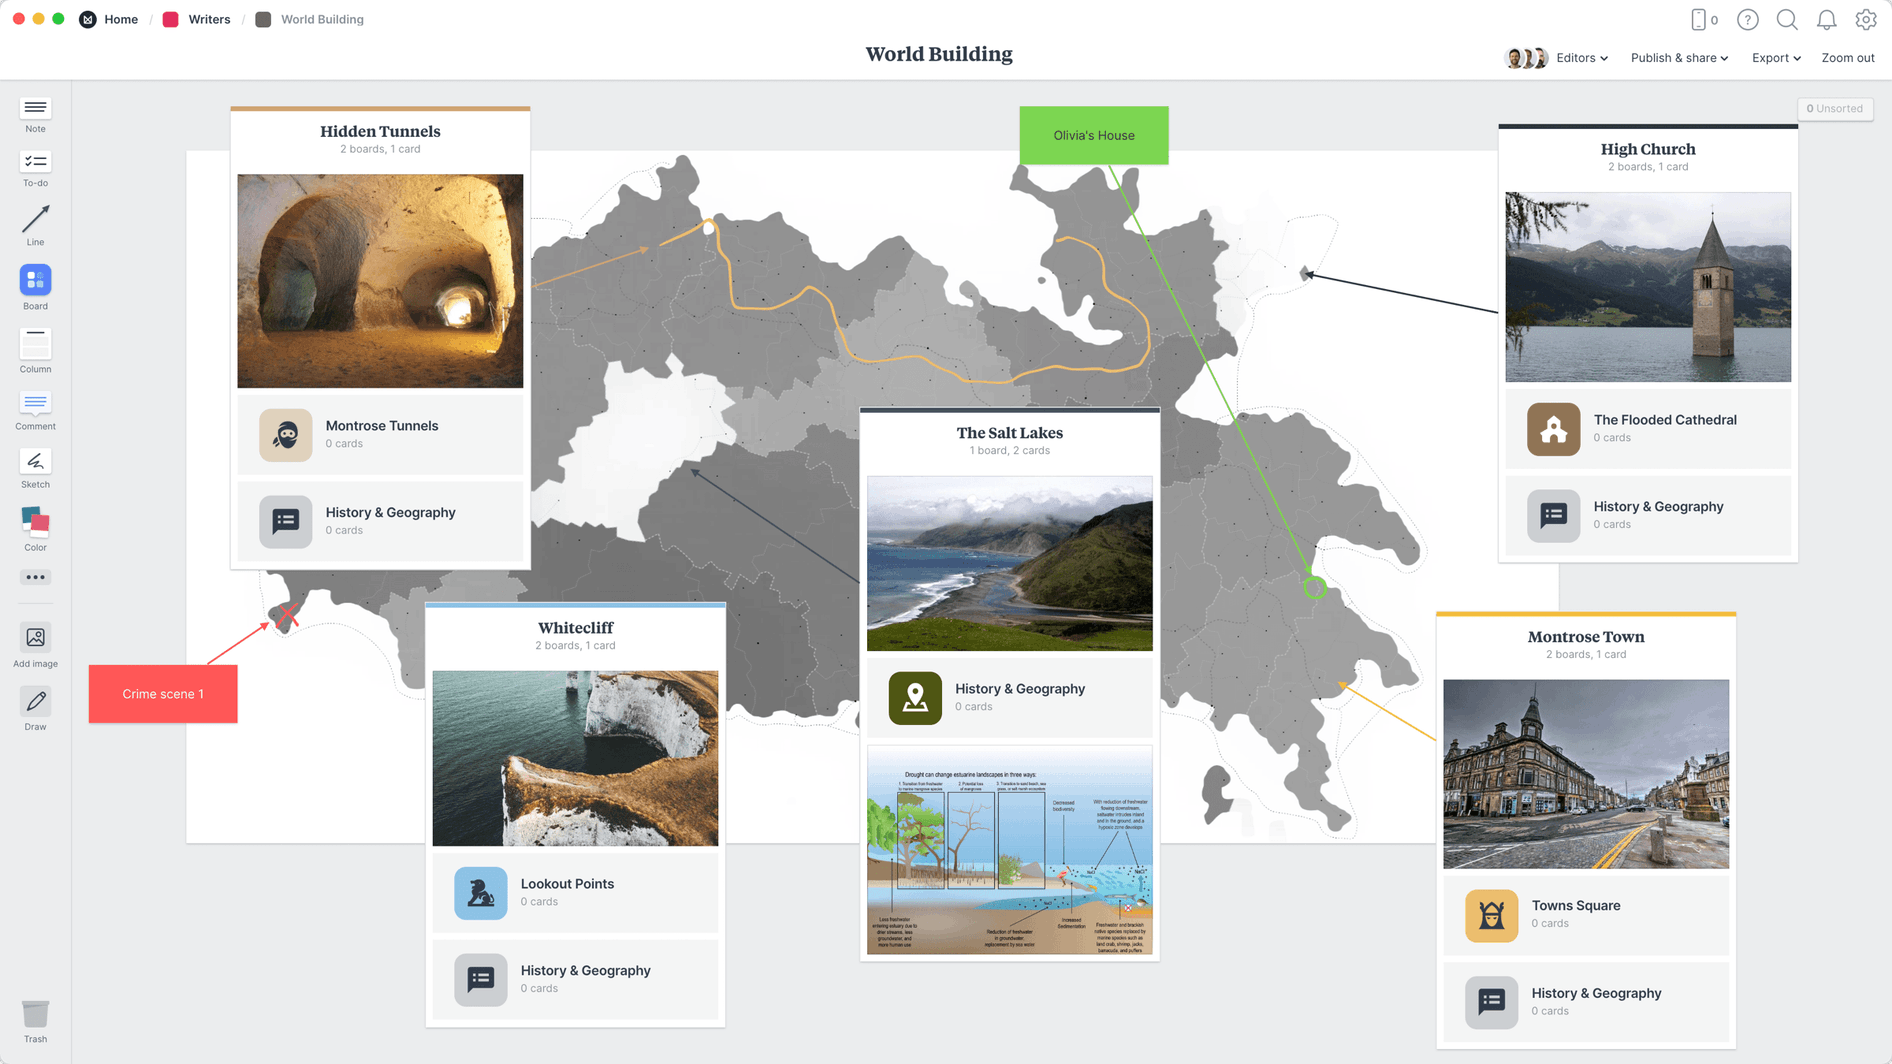 World Building Template, within the Milanote app